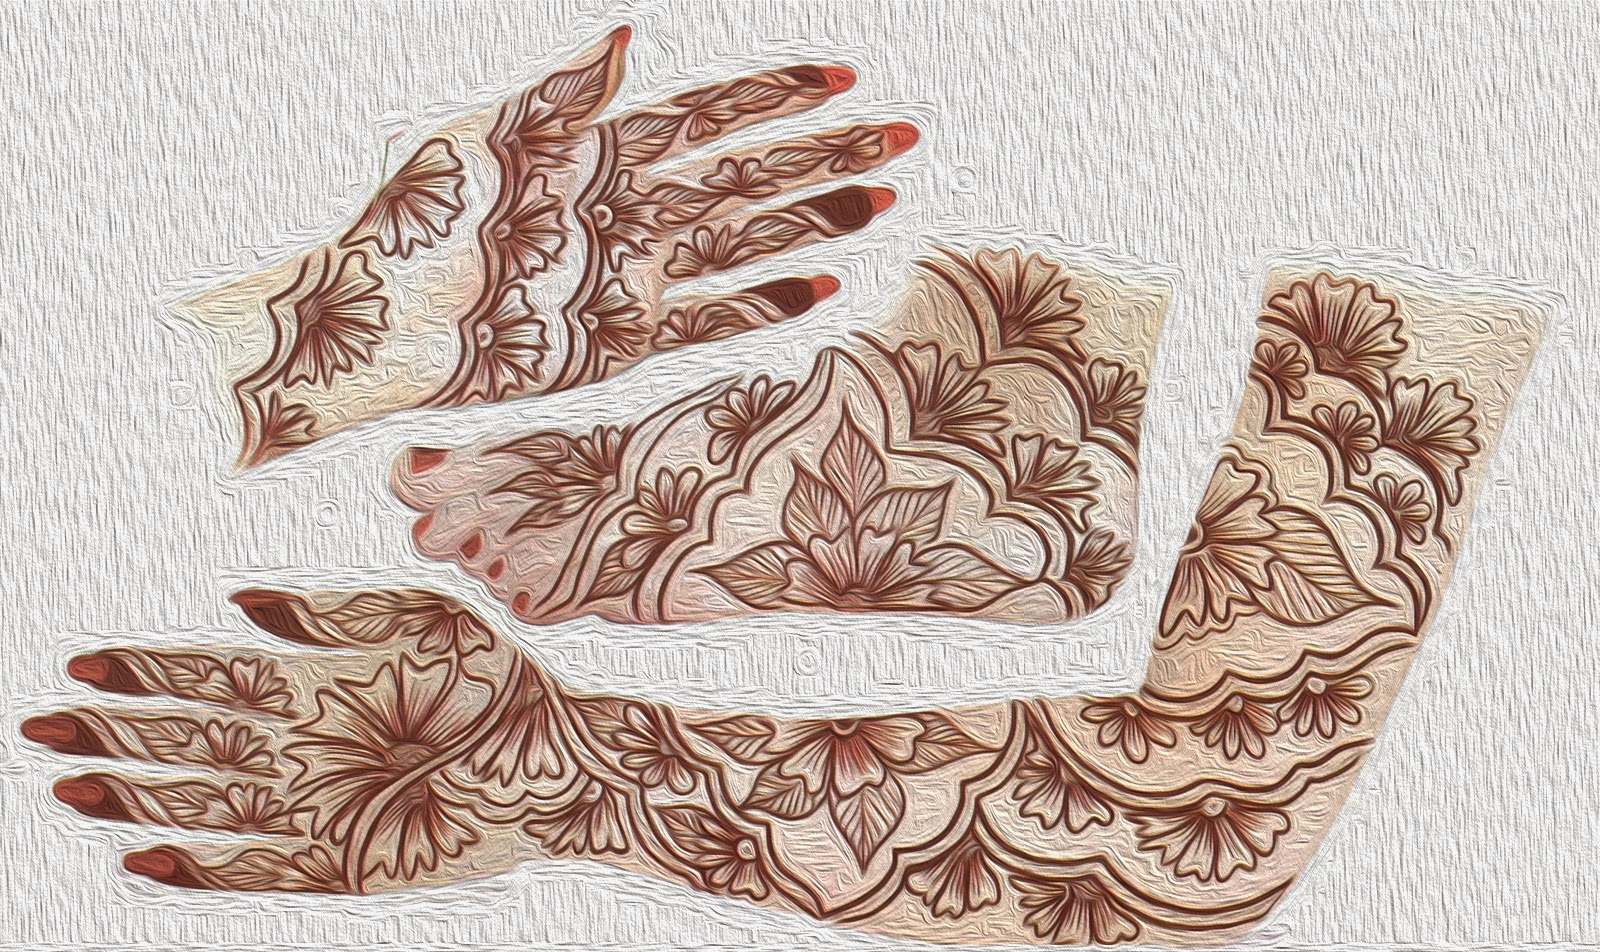 Total Designs of Mehandi for Dulhan